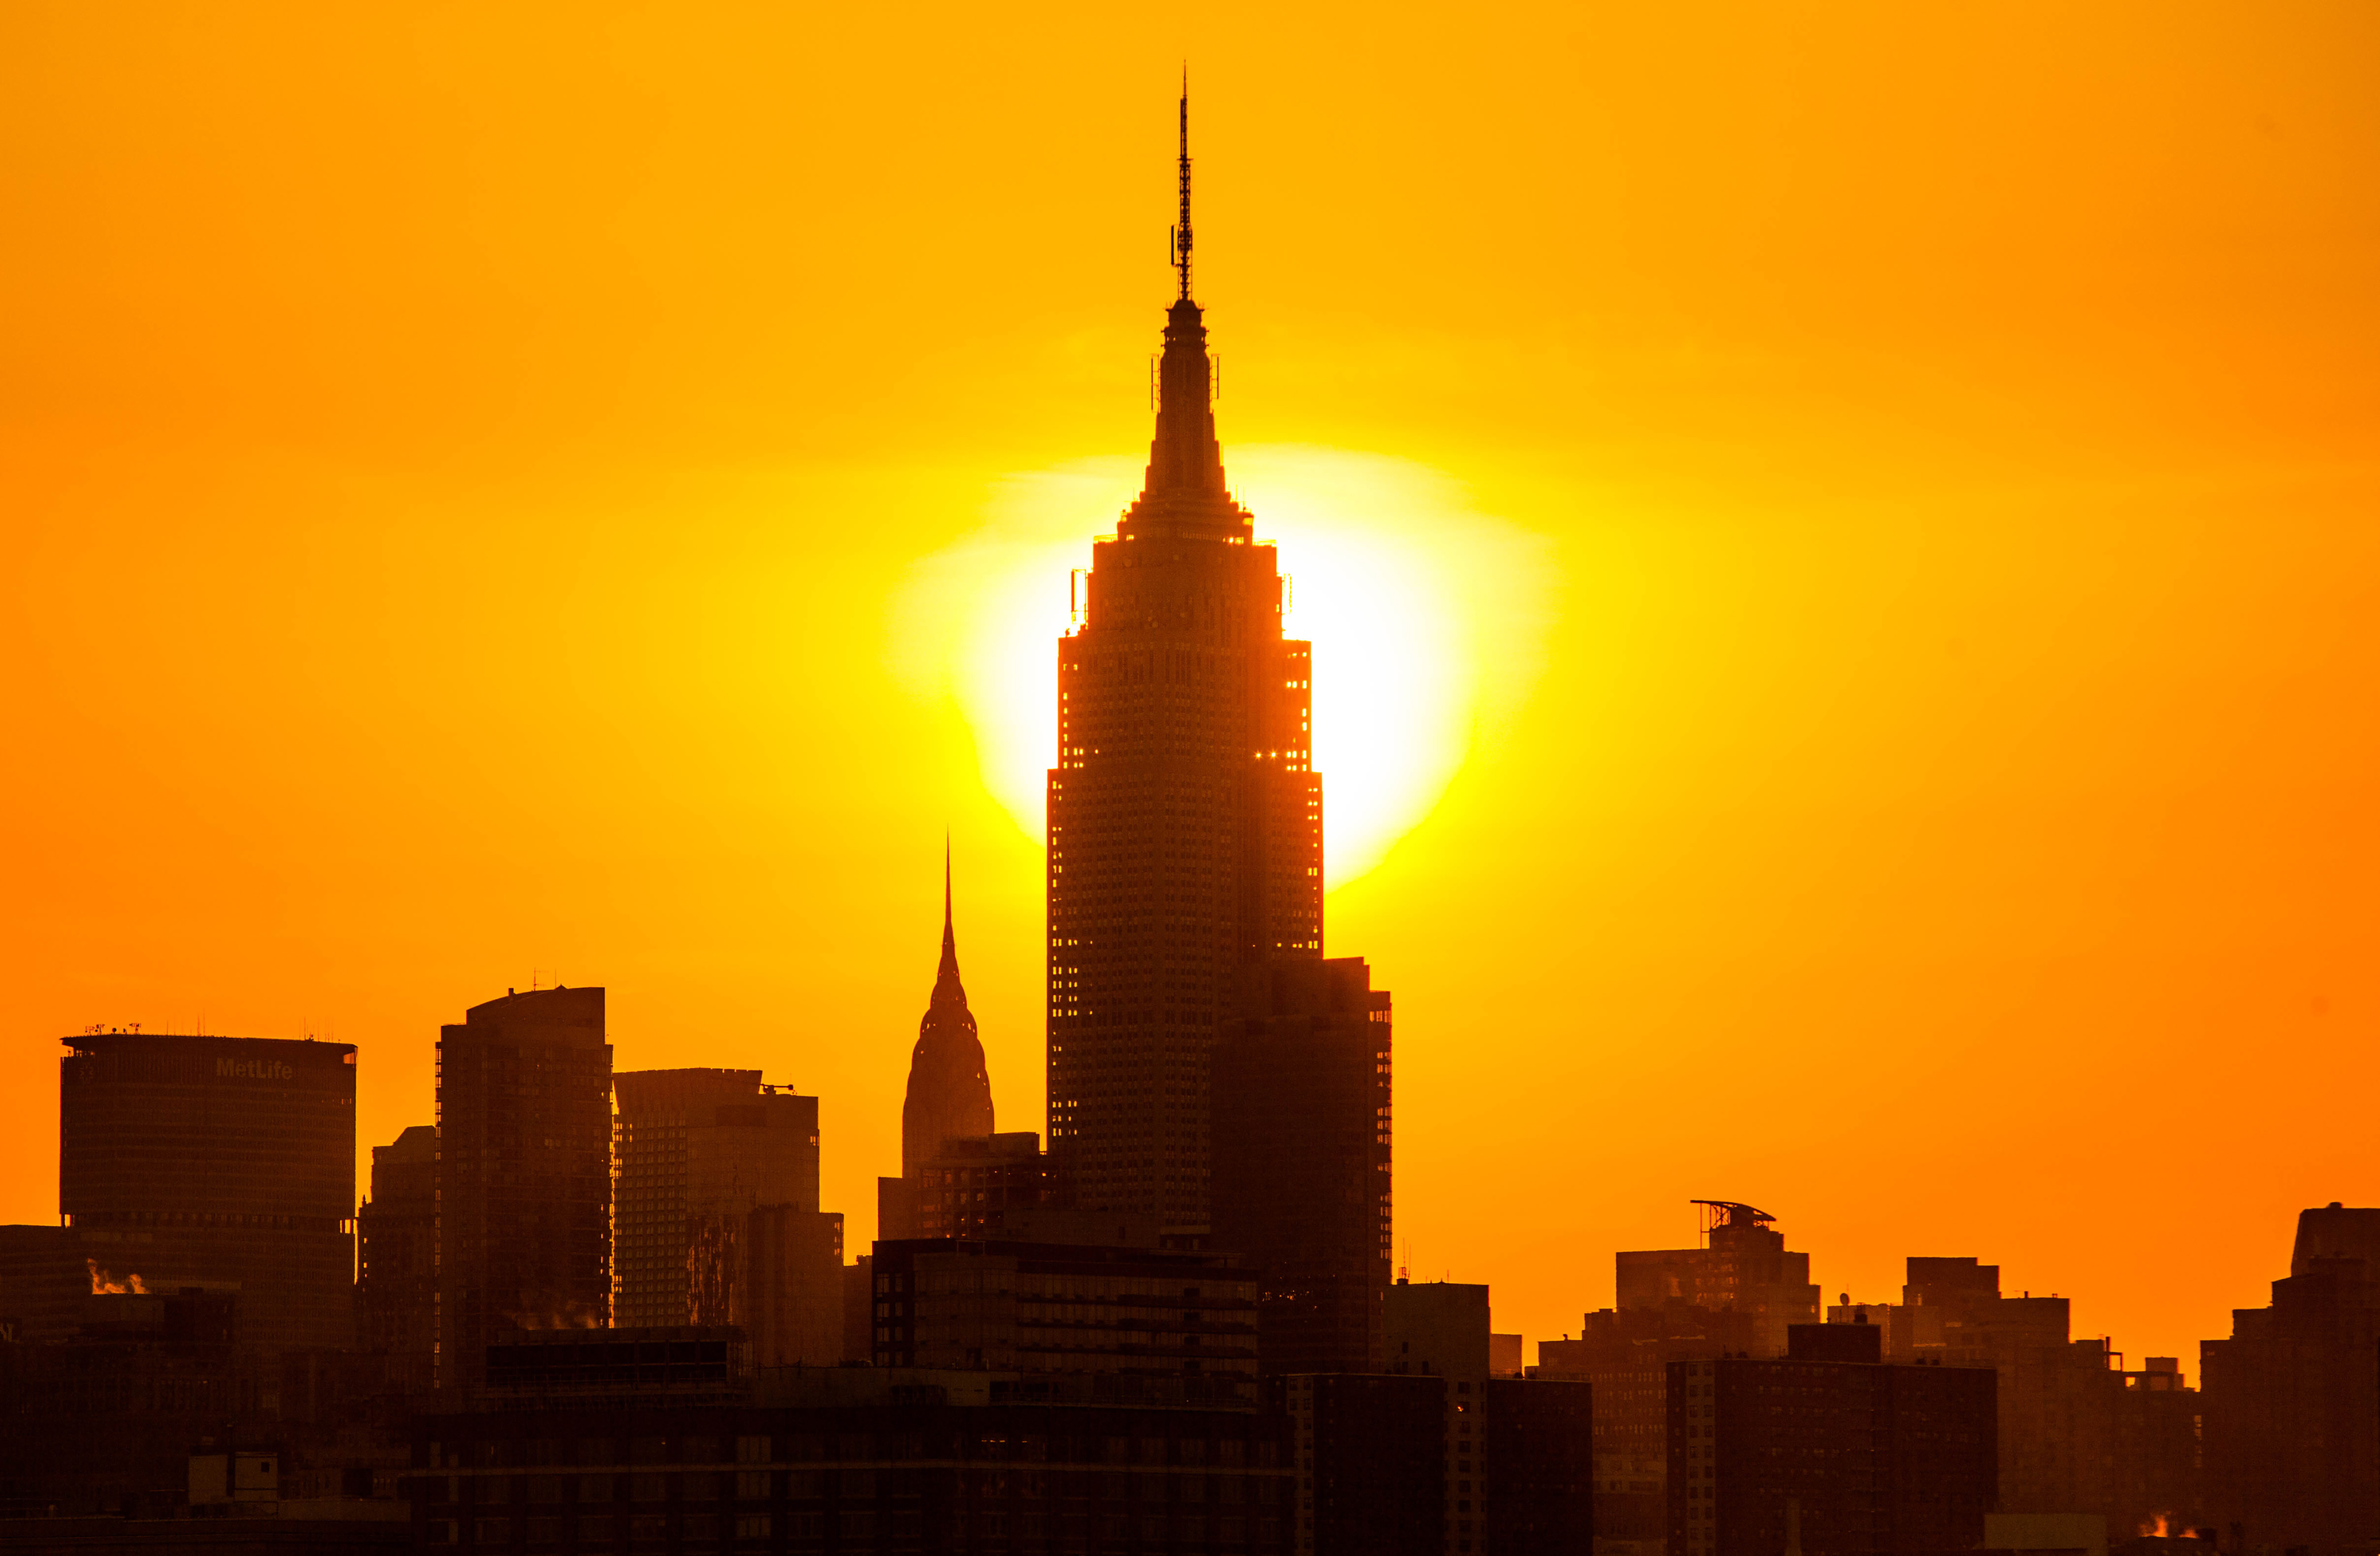 Bad news: This heat wave is sticking around NYC